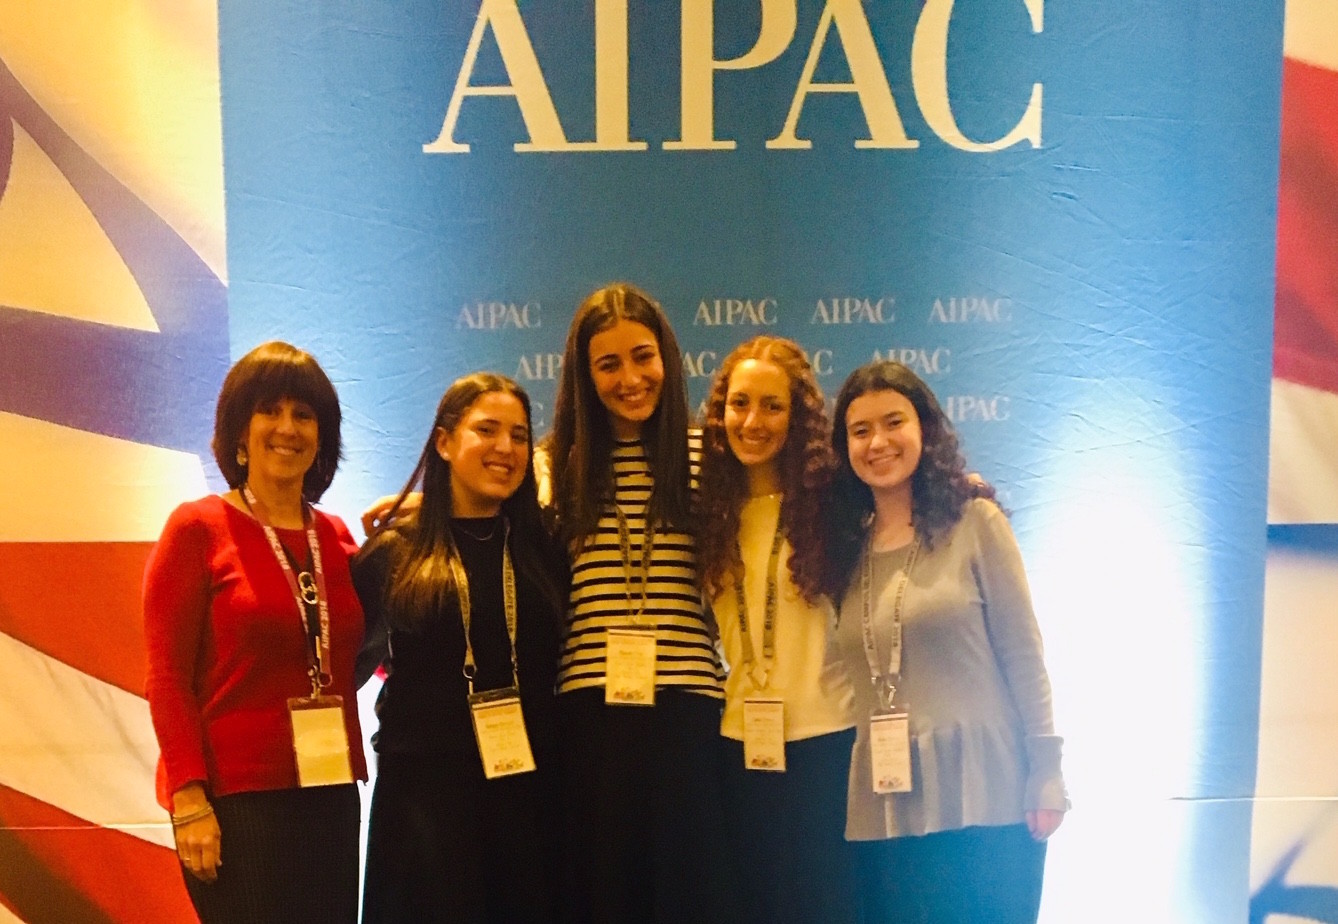 Accompanied by faculty member Mrs. Tamar Bindiger, SKA students (from left) Batya Altmark, Rivka Bennun, Eleora Fine and Celia Shaoul attended AIPAC's Schusterman Advocacy Institute High School Summit in Washington.